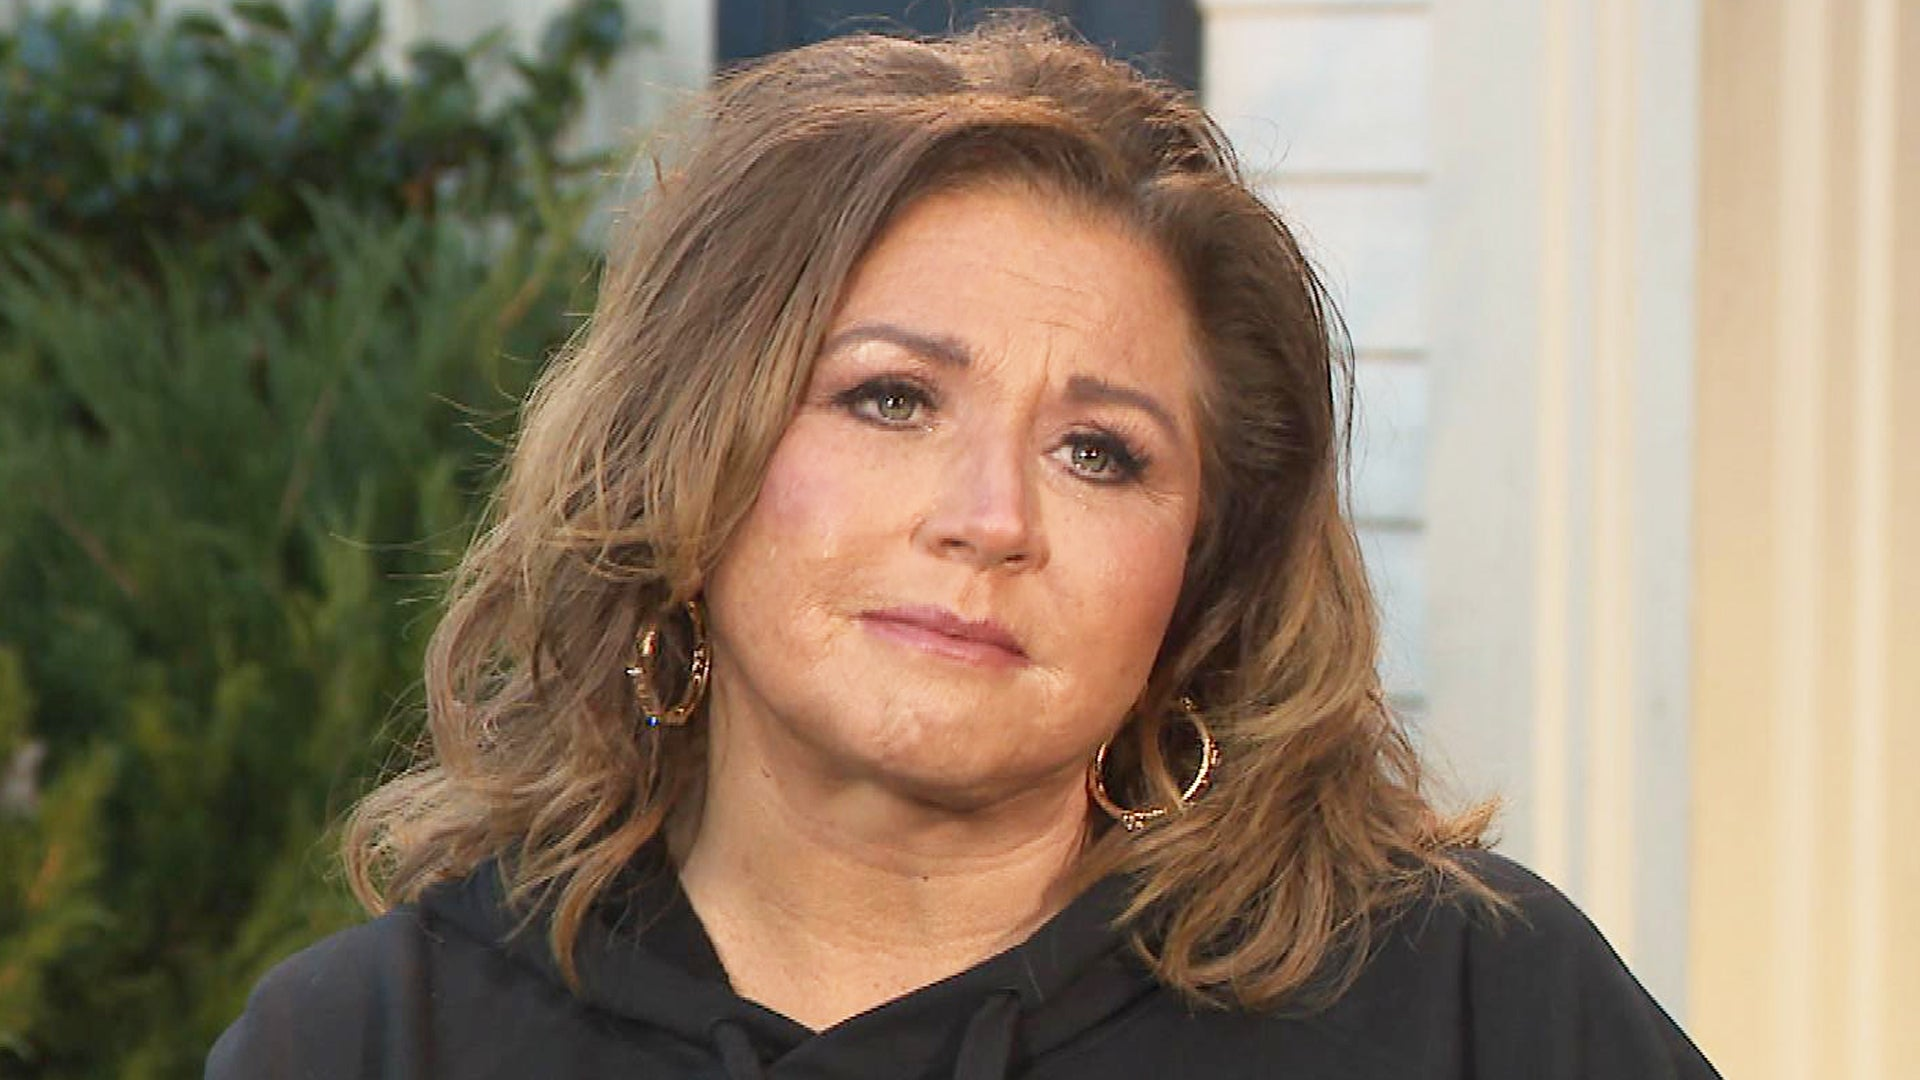 abby-lee-miller-reveals-she-wishes-shed-died-after-emergency-surgery-in-2018-heres-why